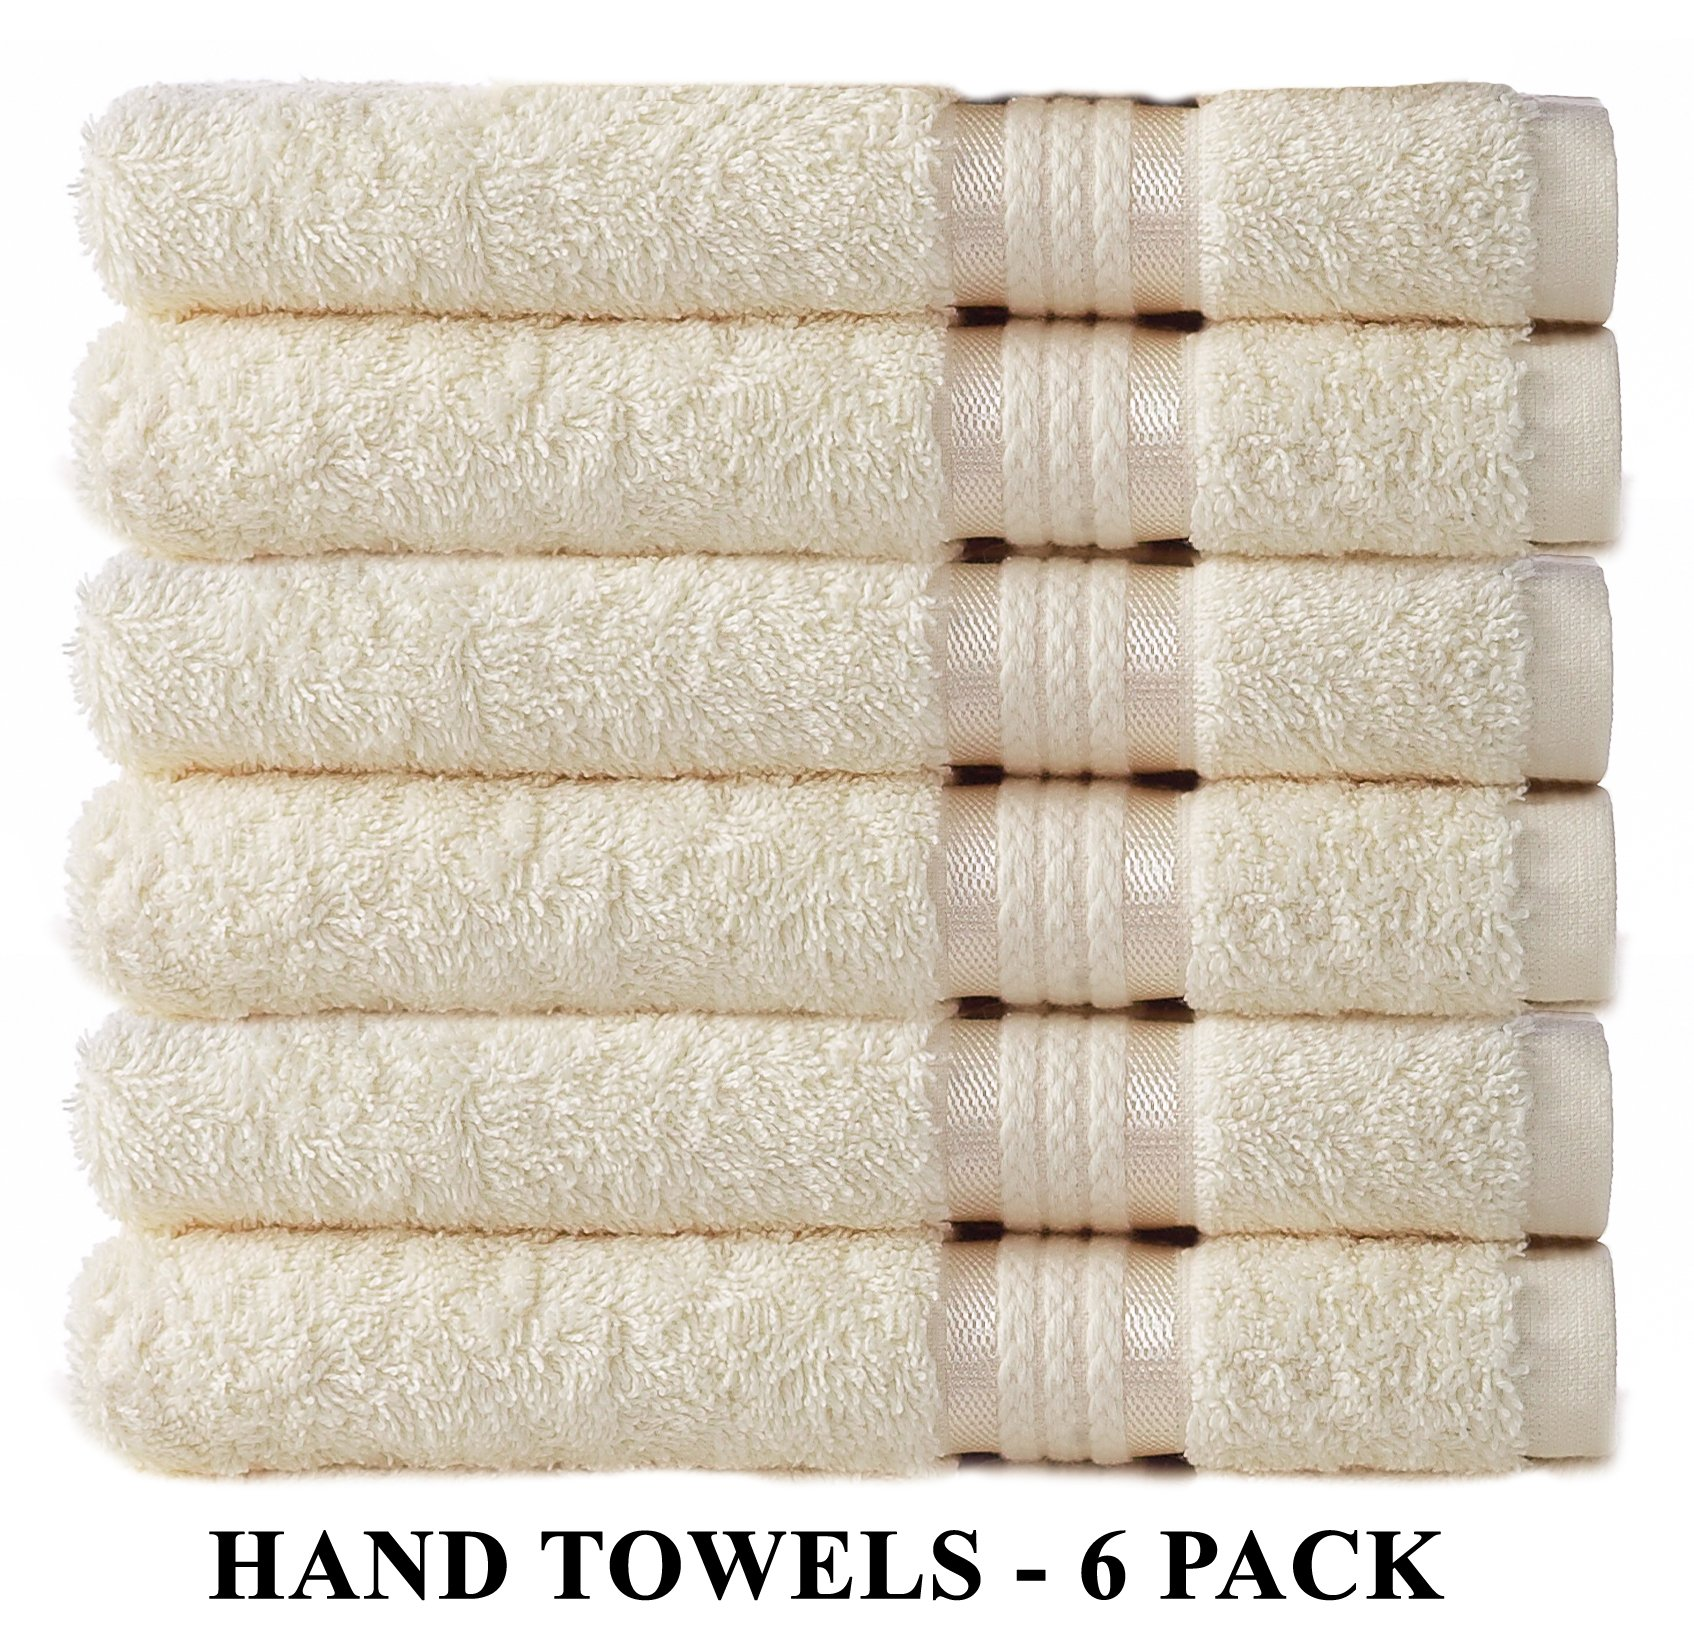 Cotton Craft Ultra Soft 6 Pack Hand Towels 16x28 Ivory weighs 6 Ounces each - 100% Pure Ringspun Cotton - Luxurious Rayon trim - Ideal for everyday use - Easy care machine wash